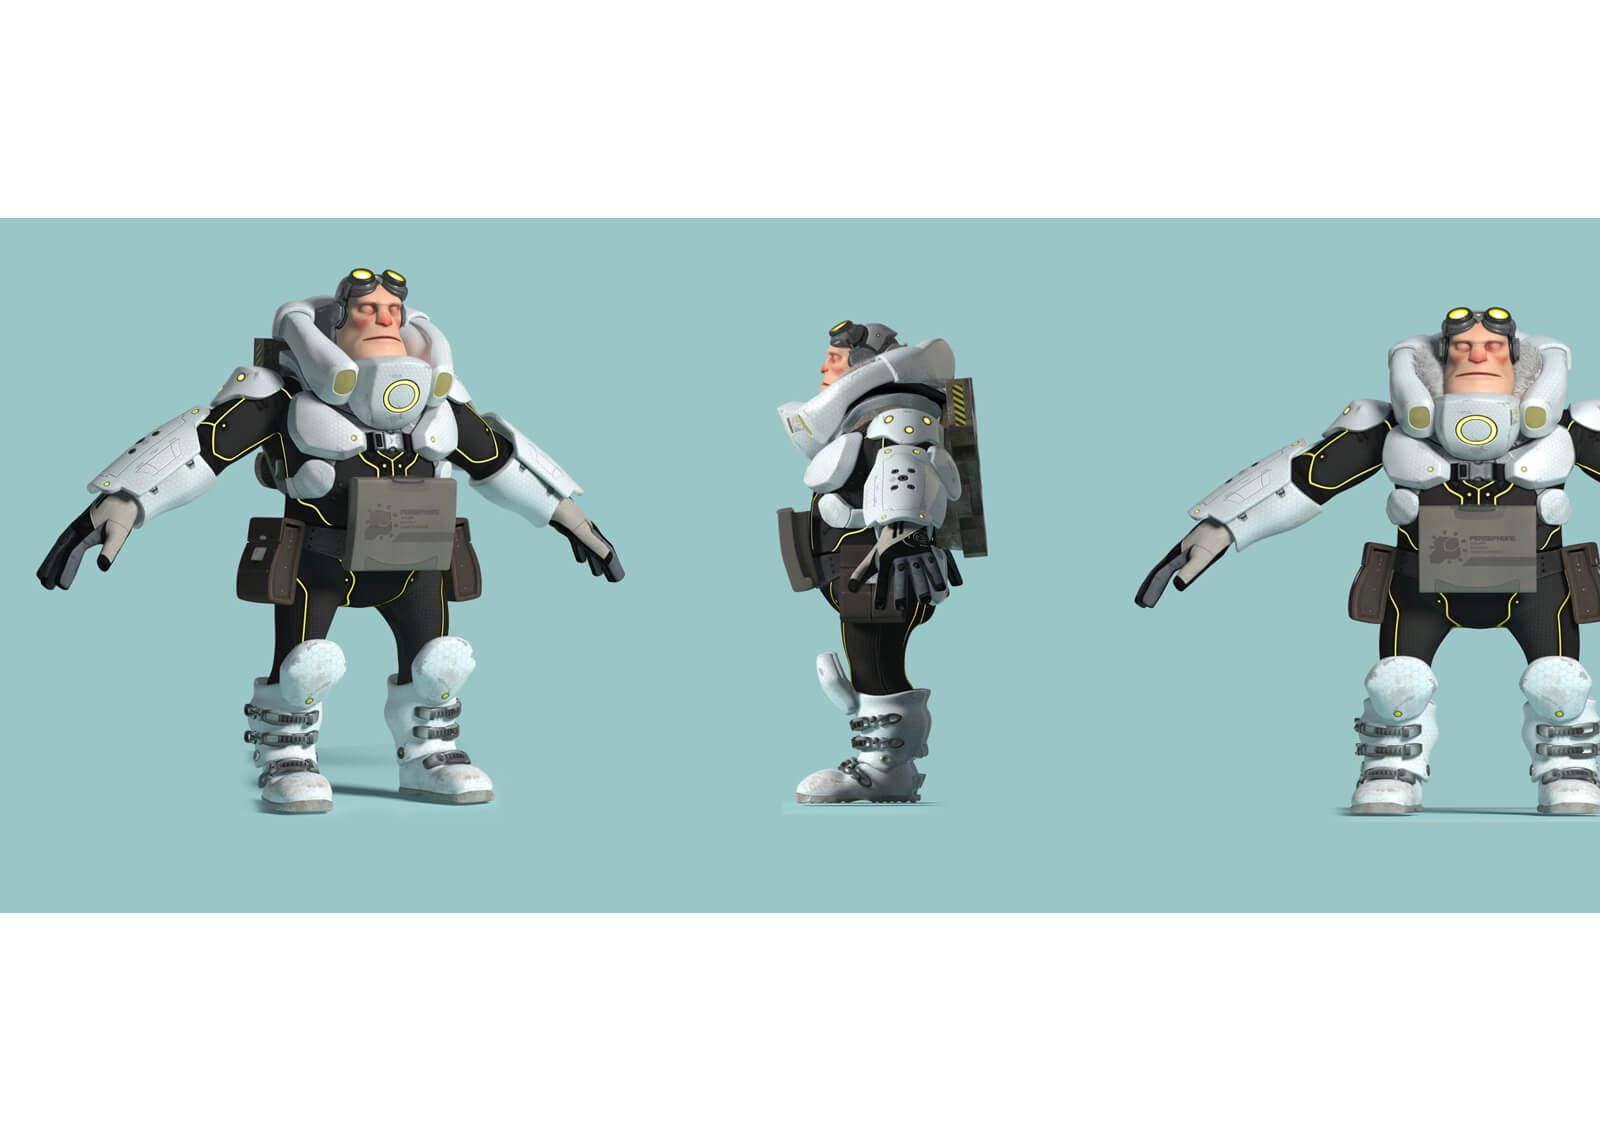 3D models from the film Level 1457 of a man in goggles and black and white futuristic armor from the front and behind